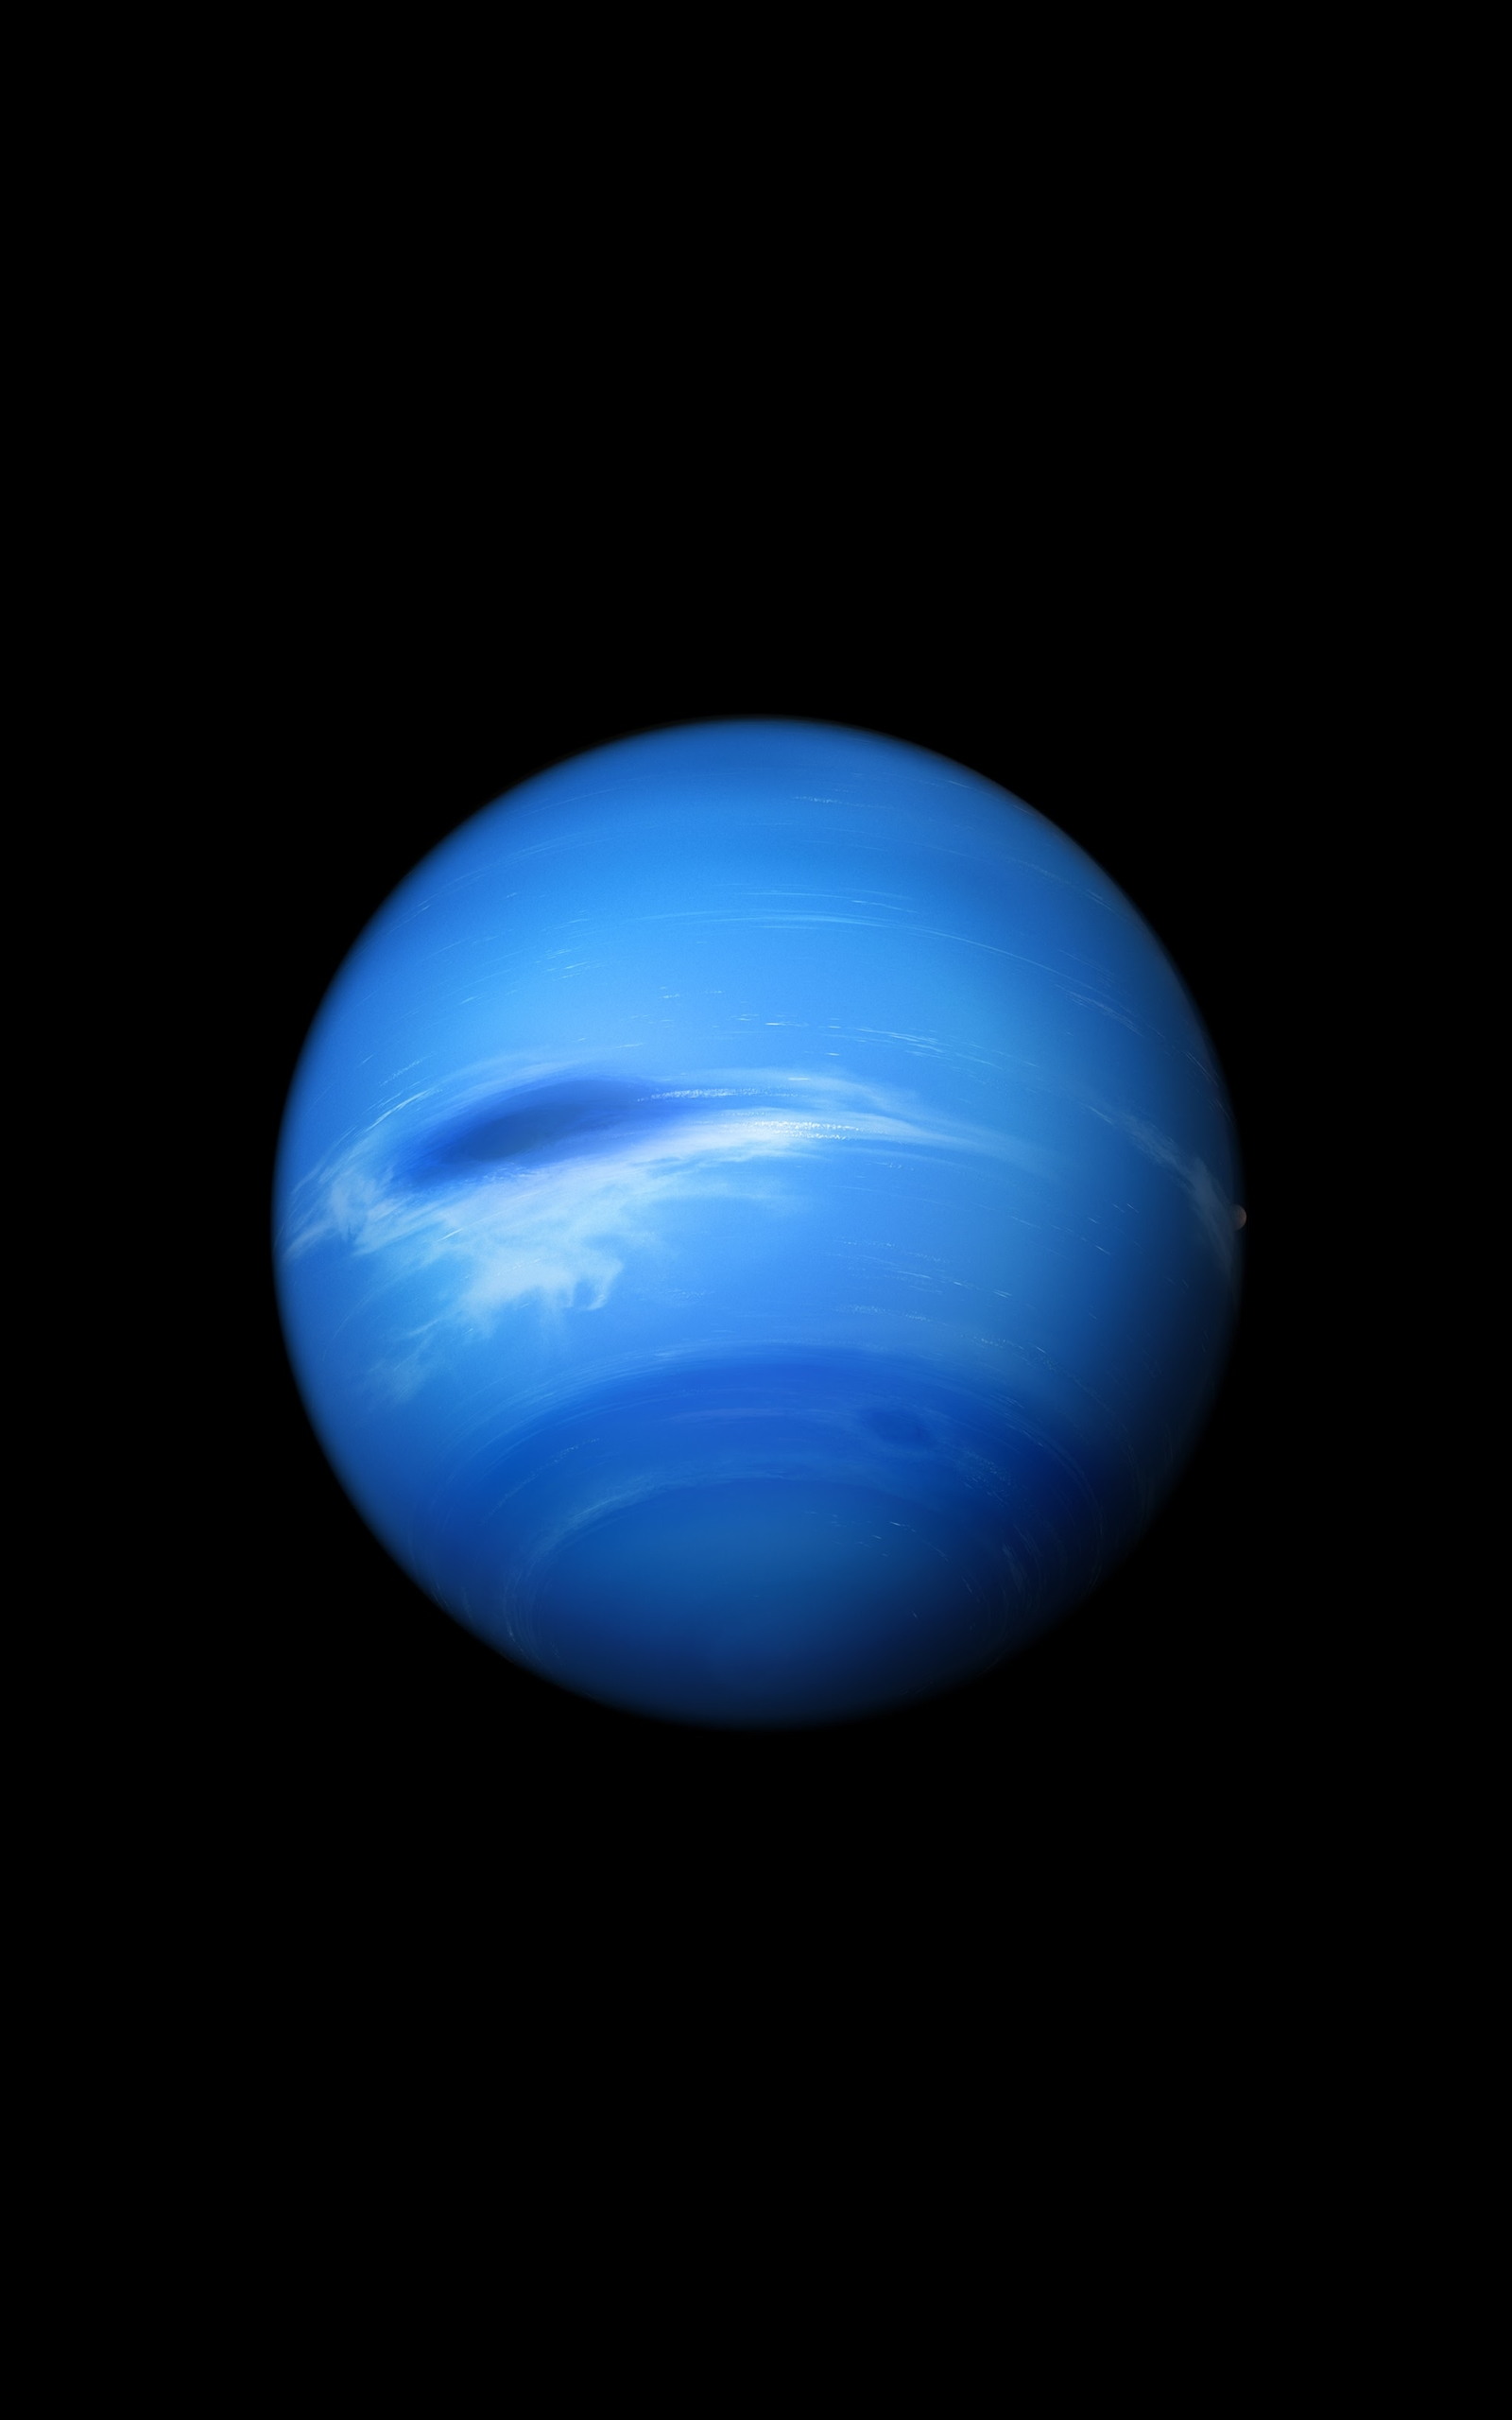 1600x2560 Ios 11 Ipad Earth 1600x2560 Resolution Wallpaper Hd Brands 4k Wallpapers Images Photos And Background